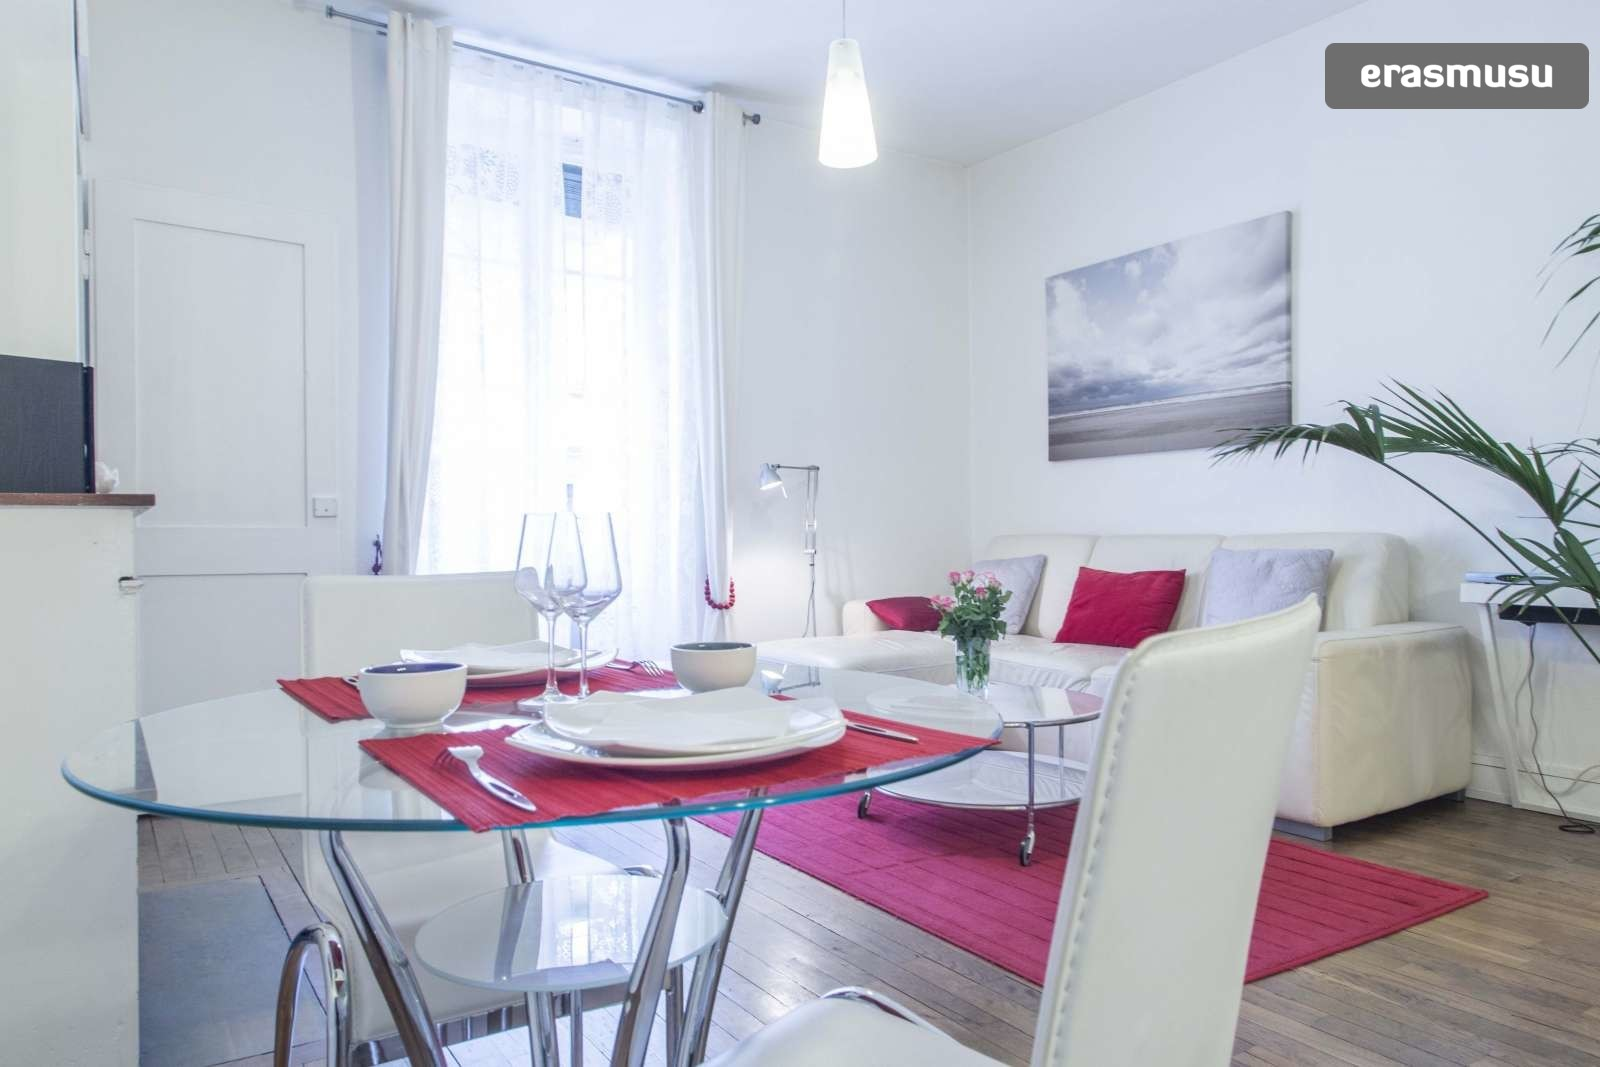 modern-luxurious-studio-apartment-rent-lyon-fdb38714b9c8670f2d51